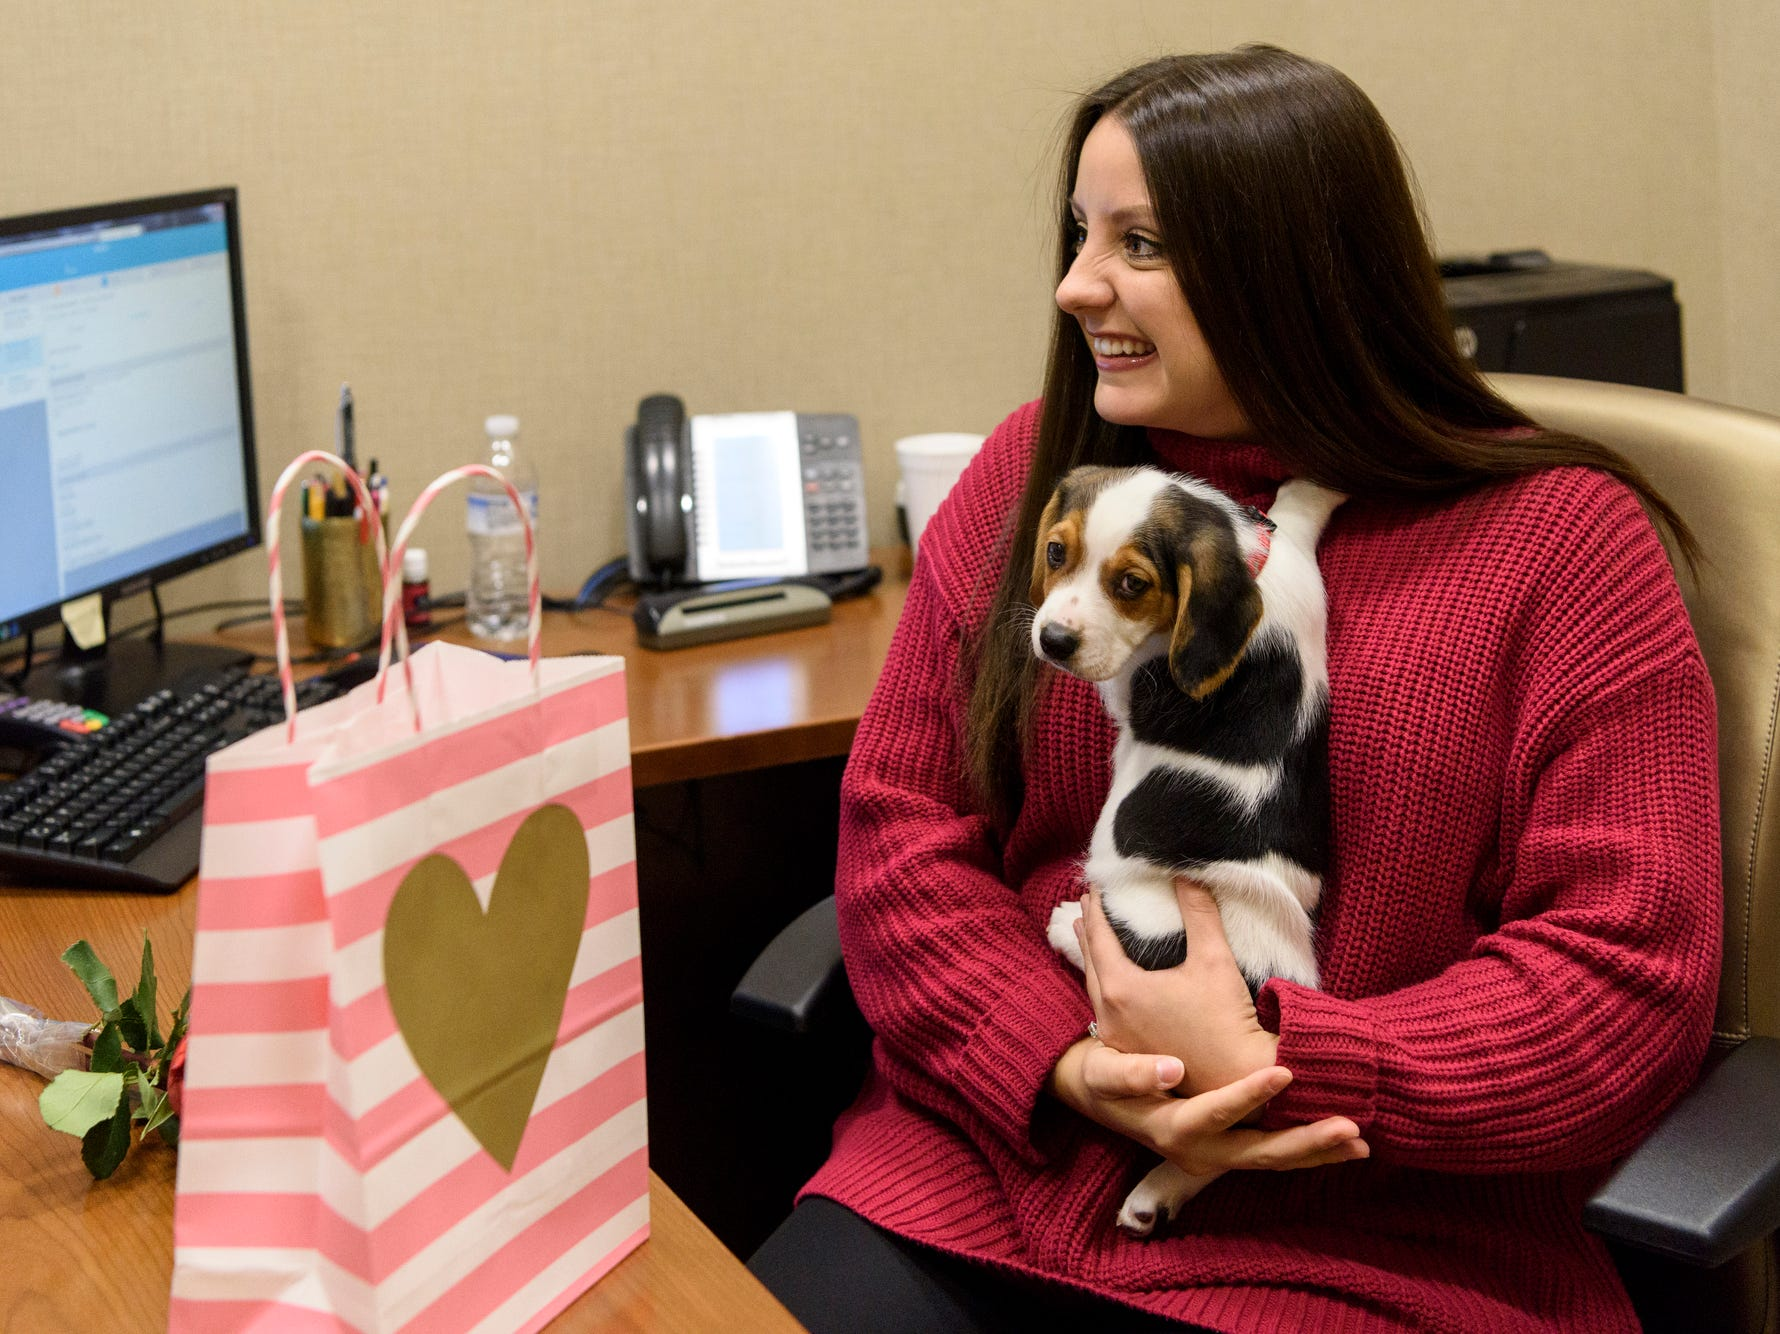 Megan Martin gushes over Prince, an eight-week-old Beagle puppy, who was sent to her Evansville Federal Credit Union office for a 30-minute cuddle session through the Vanderburgh Humane Society Cuddlegram fundraiser,  Thursday morning, Feb. 14, 2019. Her husband, Trevor Martin, arranged for the puppy deliver to surprise her at work.